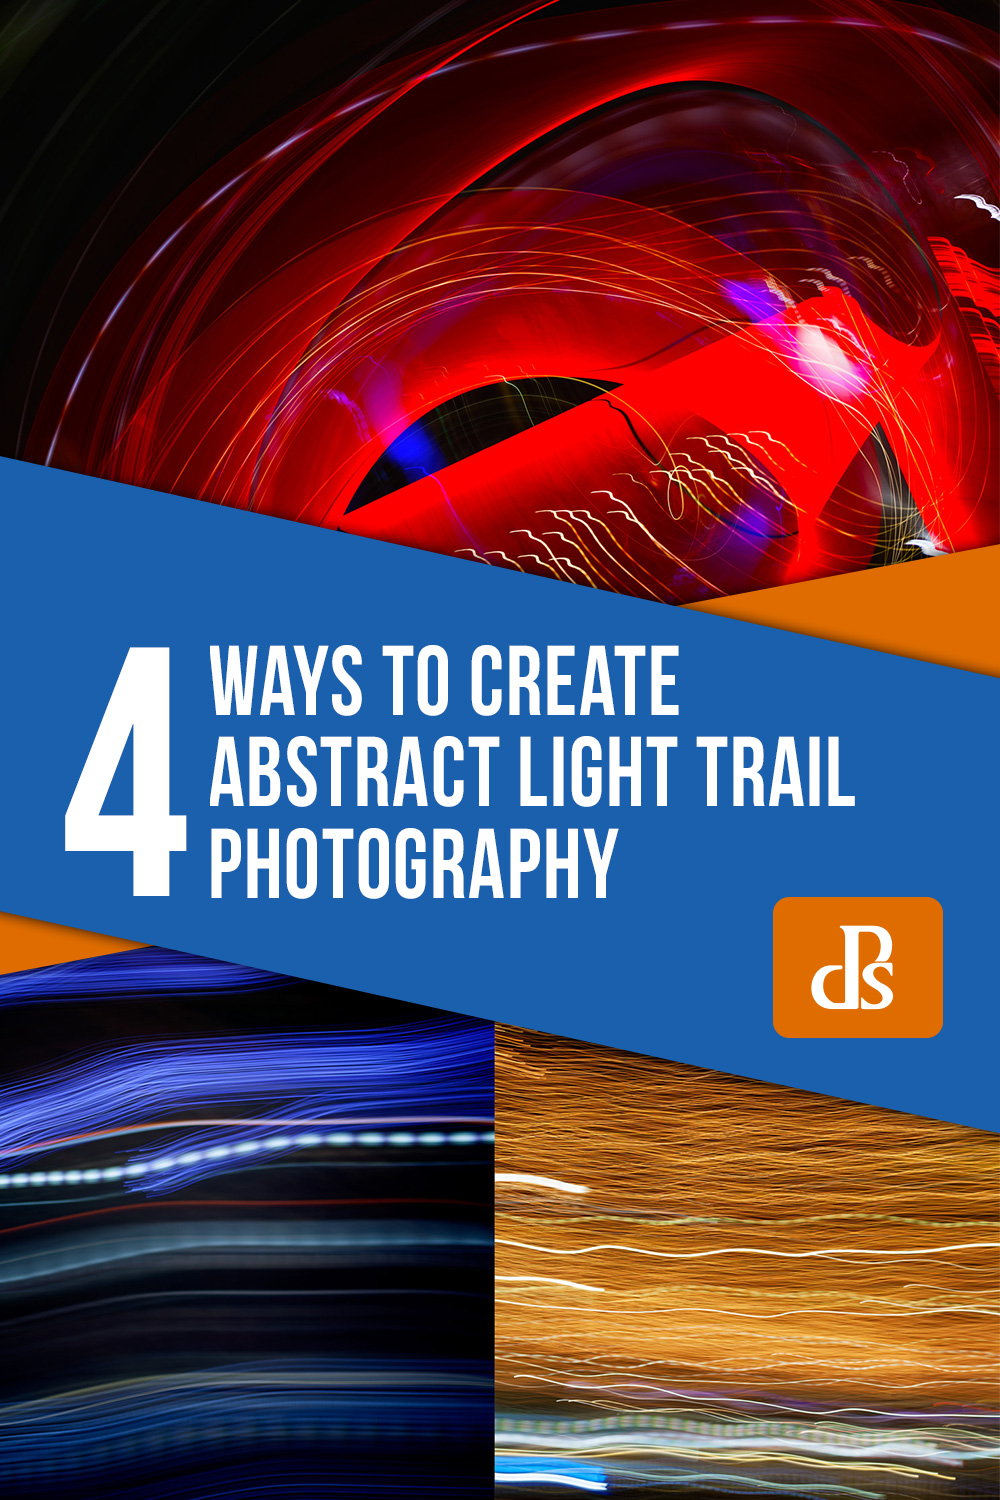 4 ways to create abstract light trail photography